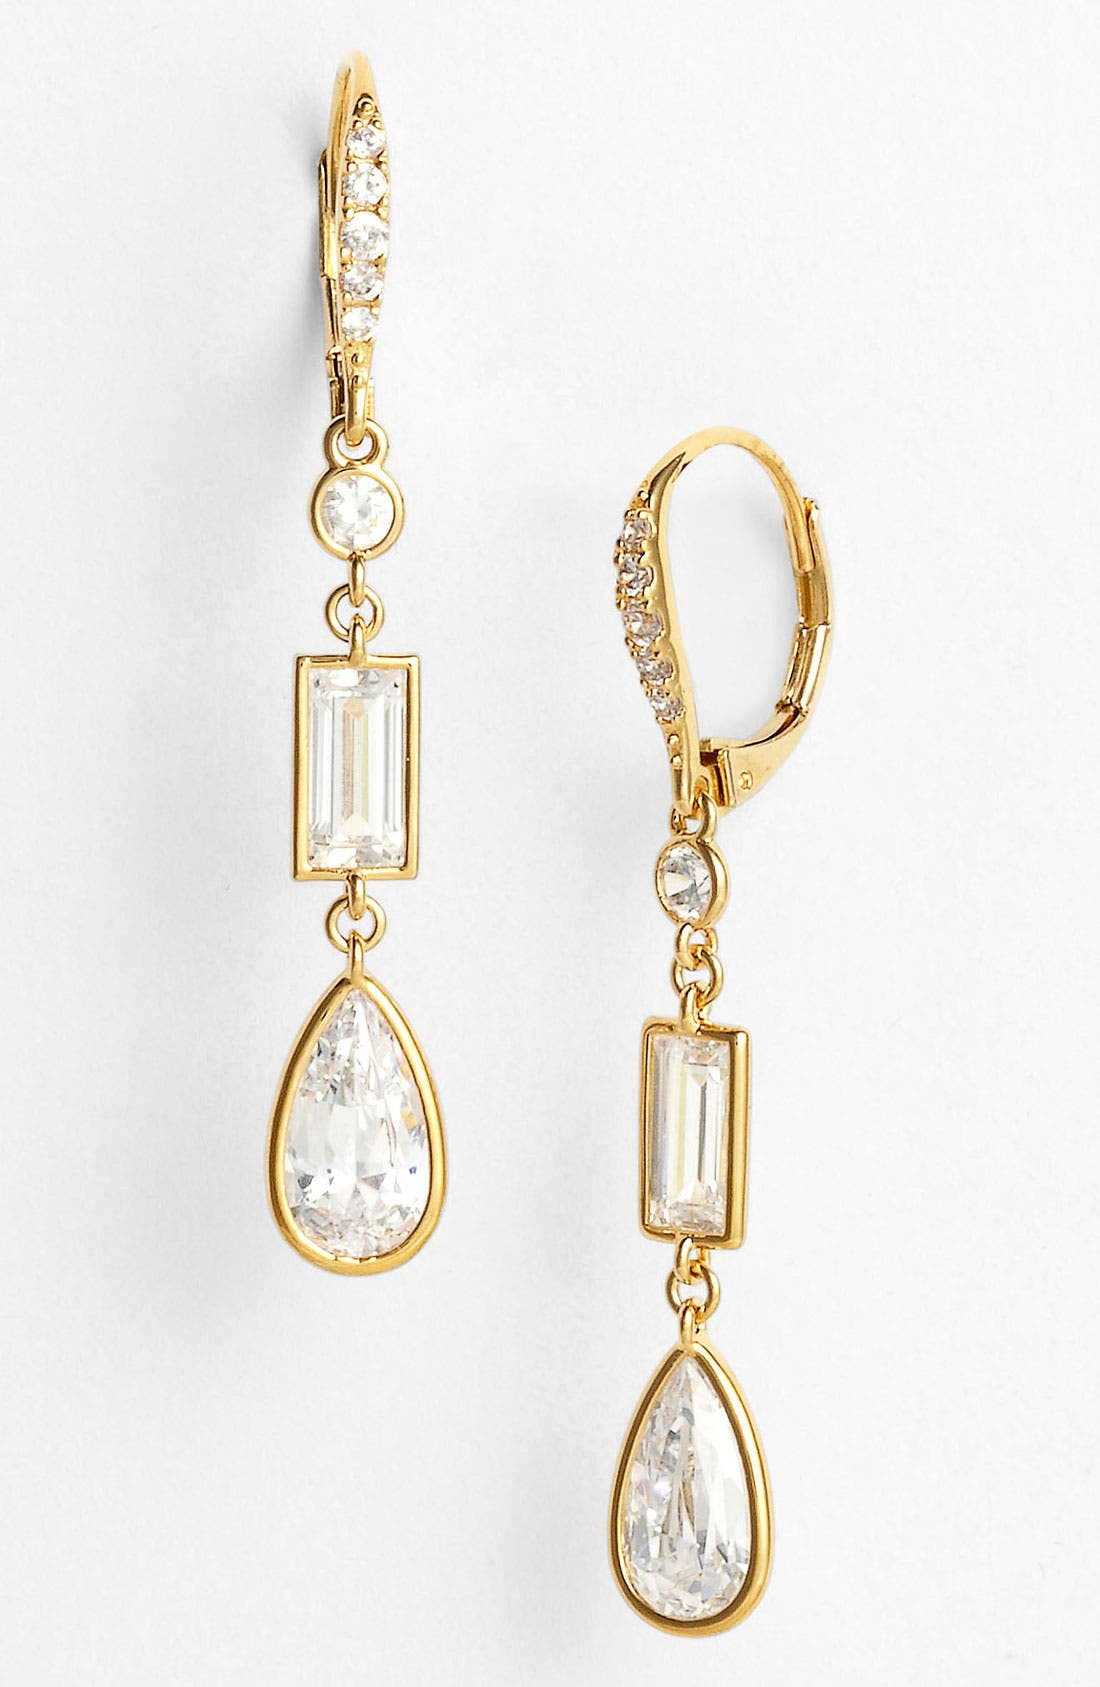 Alternate Image 1 Selected - Nadri Mixed Cut Cubic Zirconia Earrings (Nordstrom Exclusive)